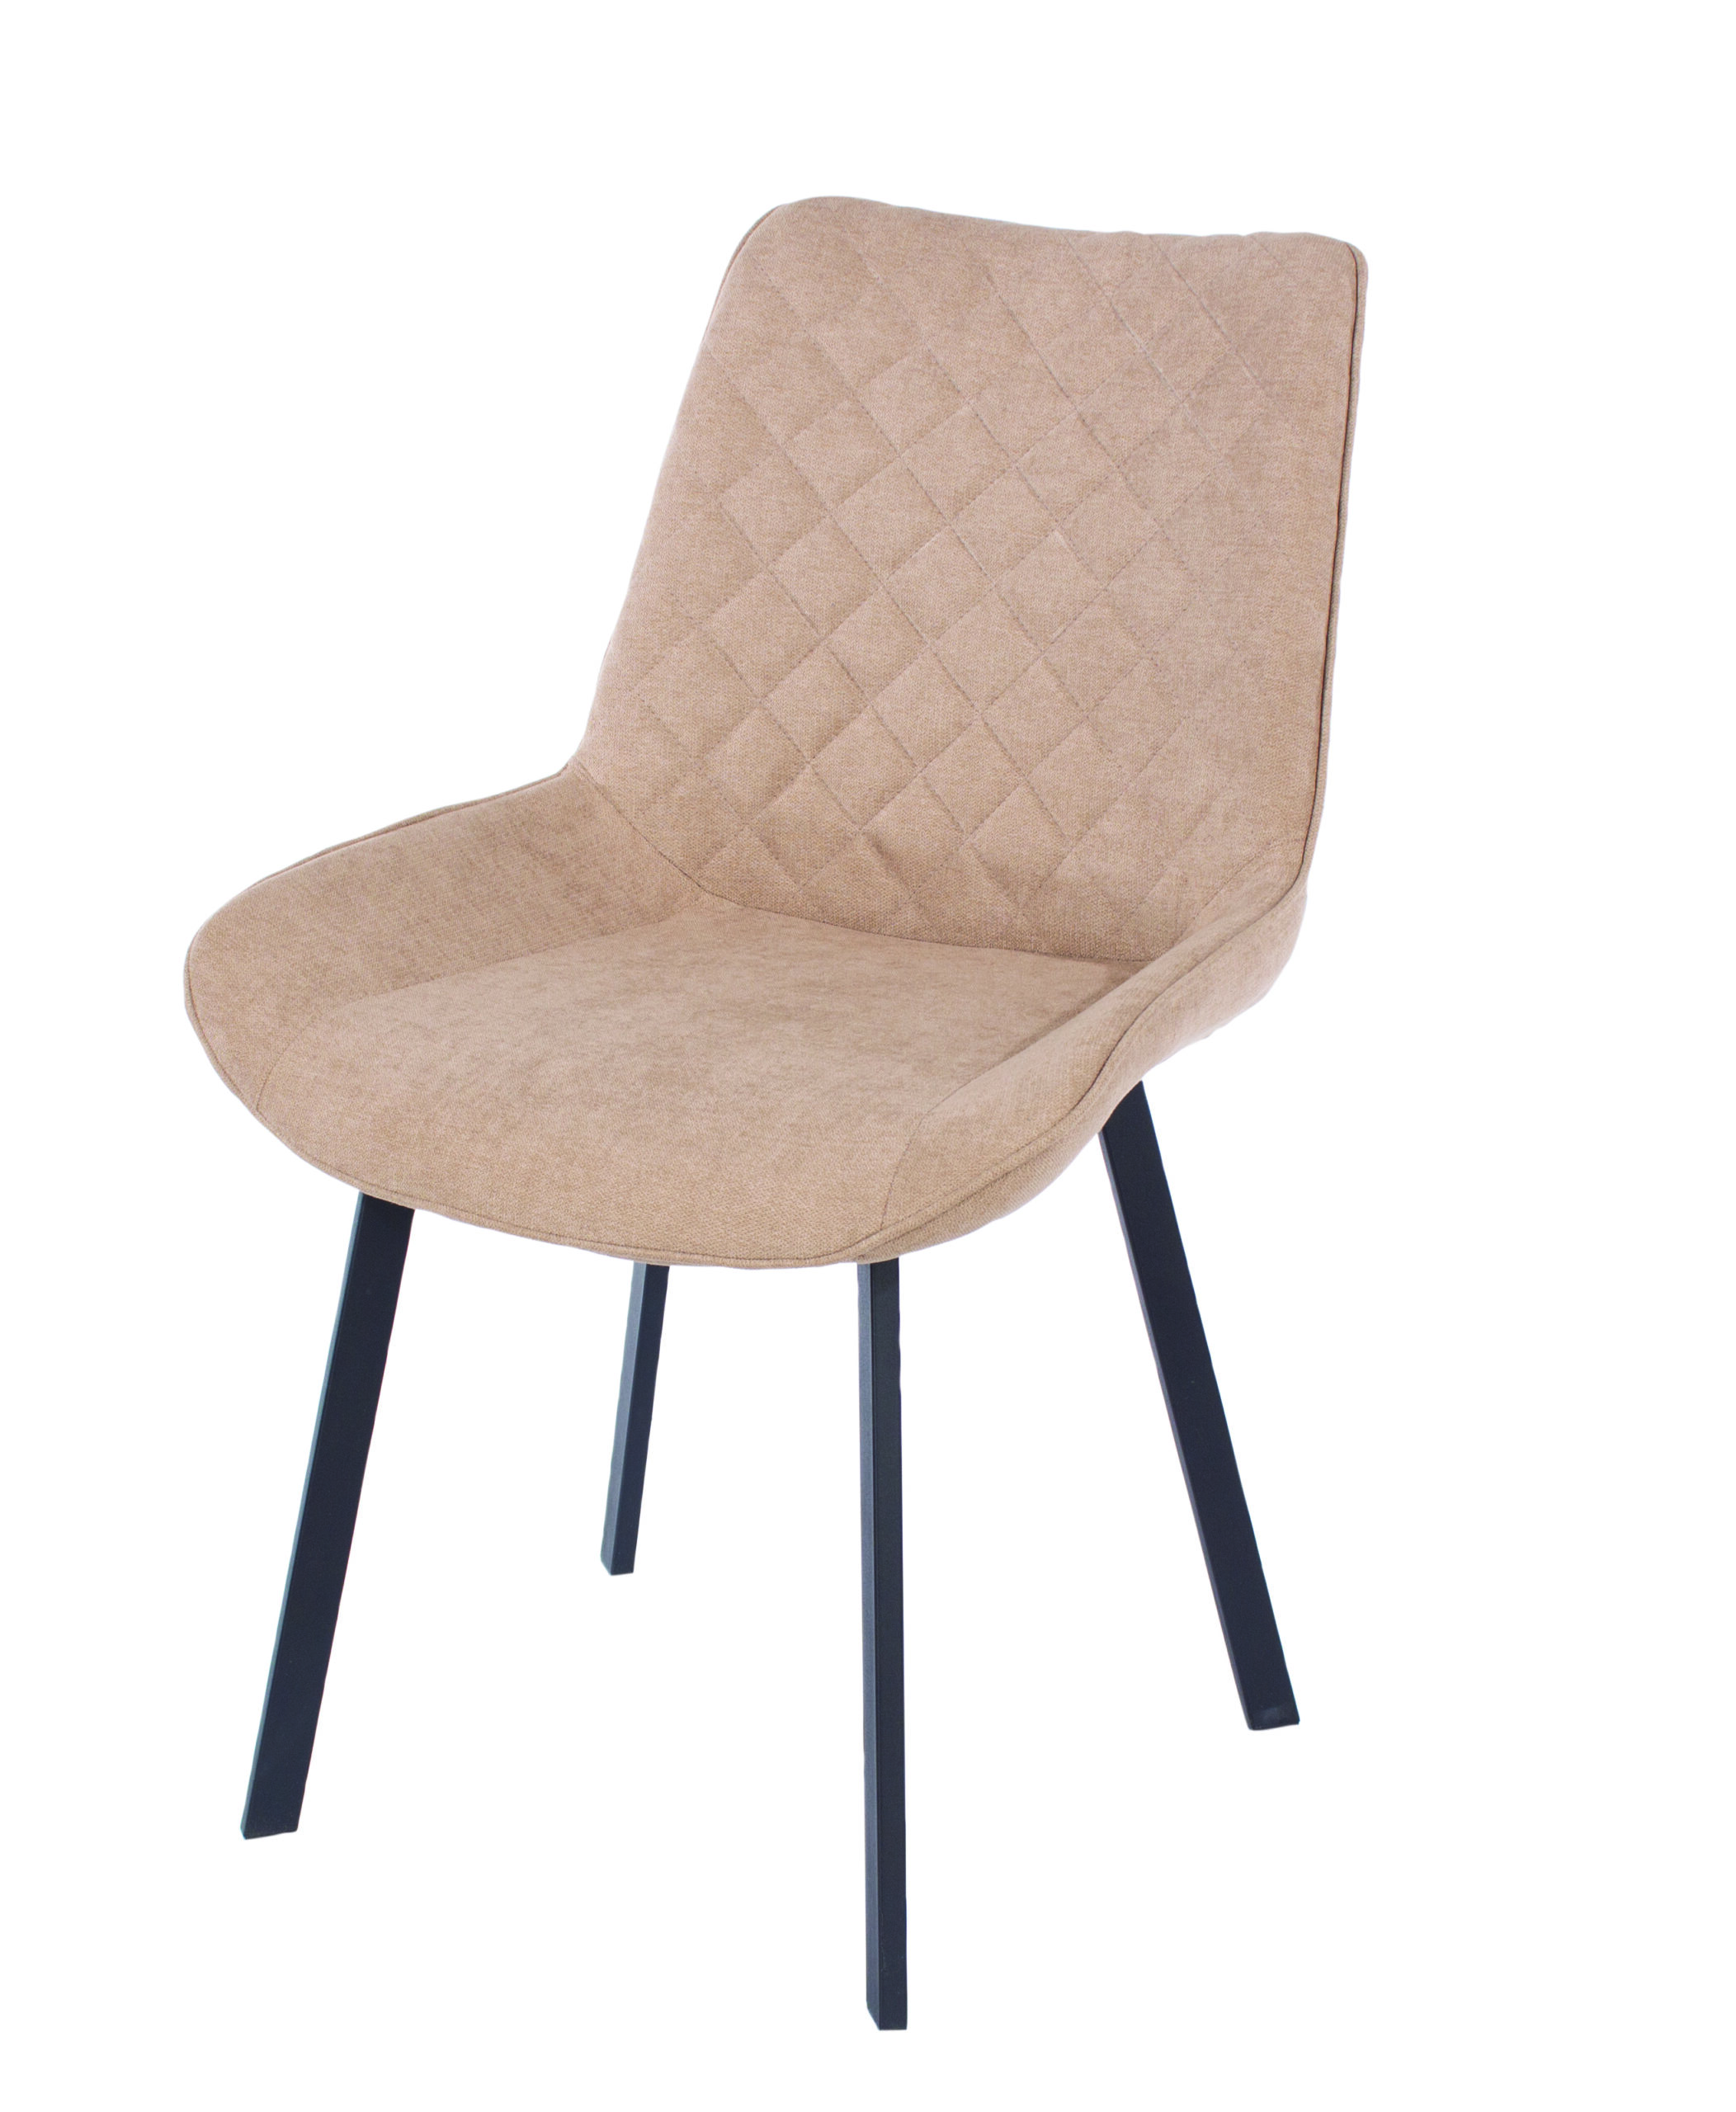 Penny Sand Fabric Chairs Black Metal Legs (Pair)